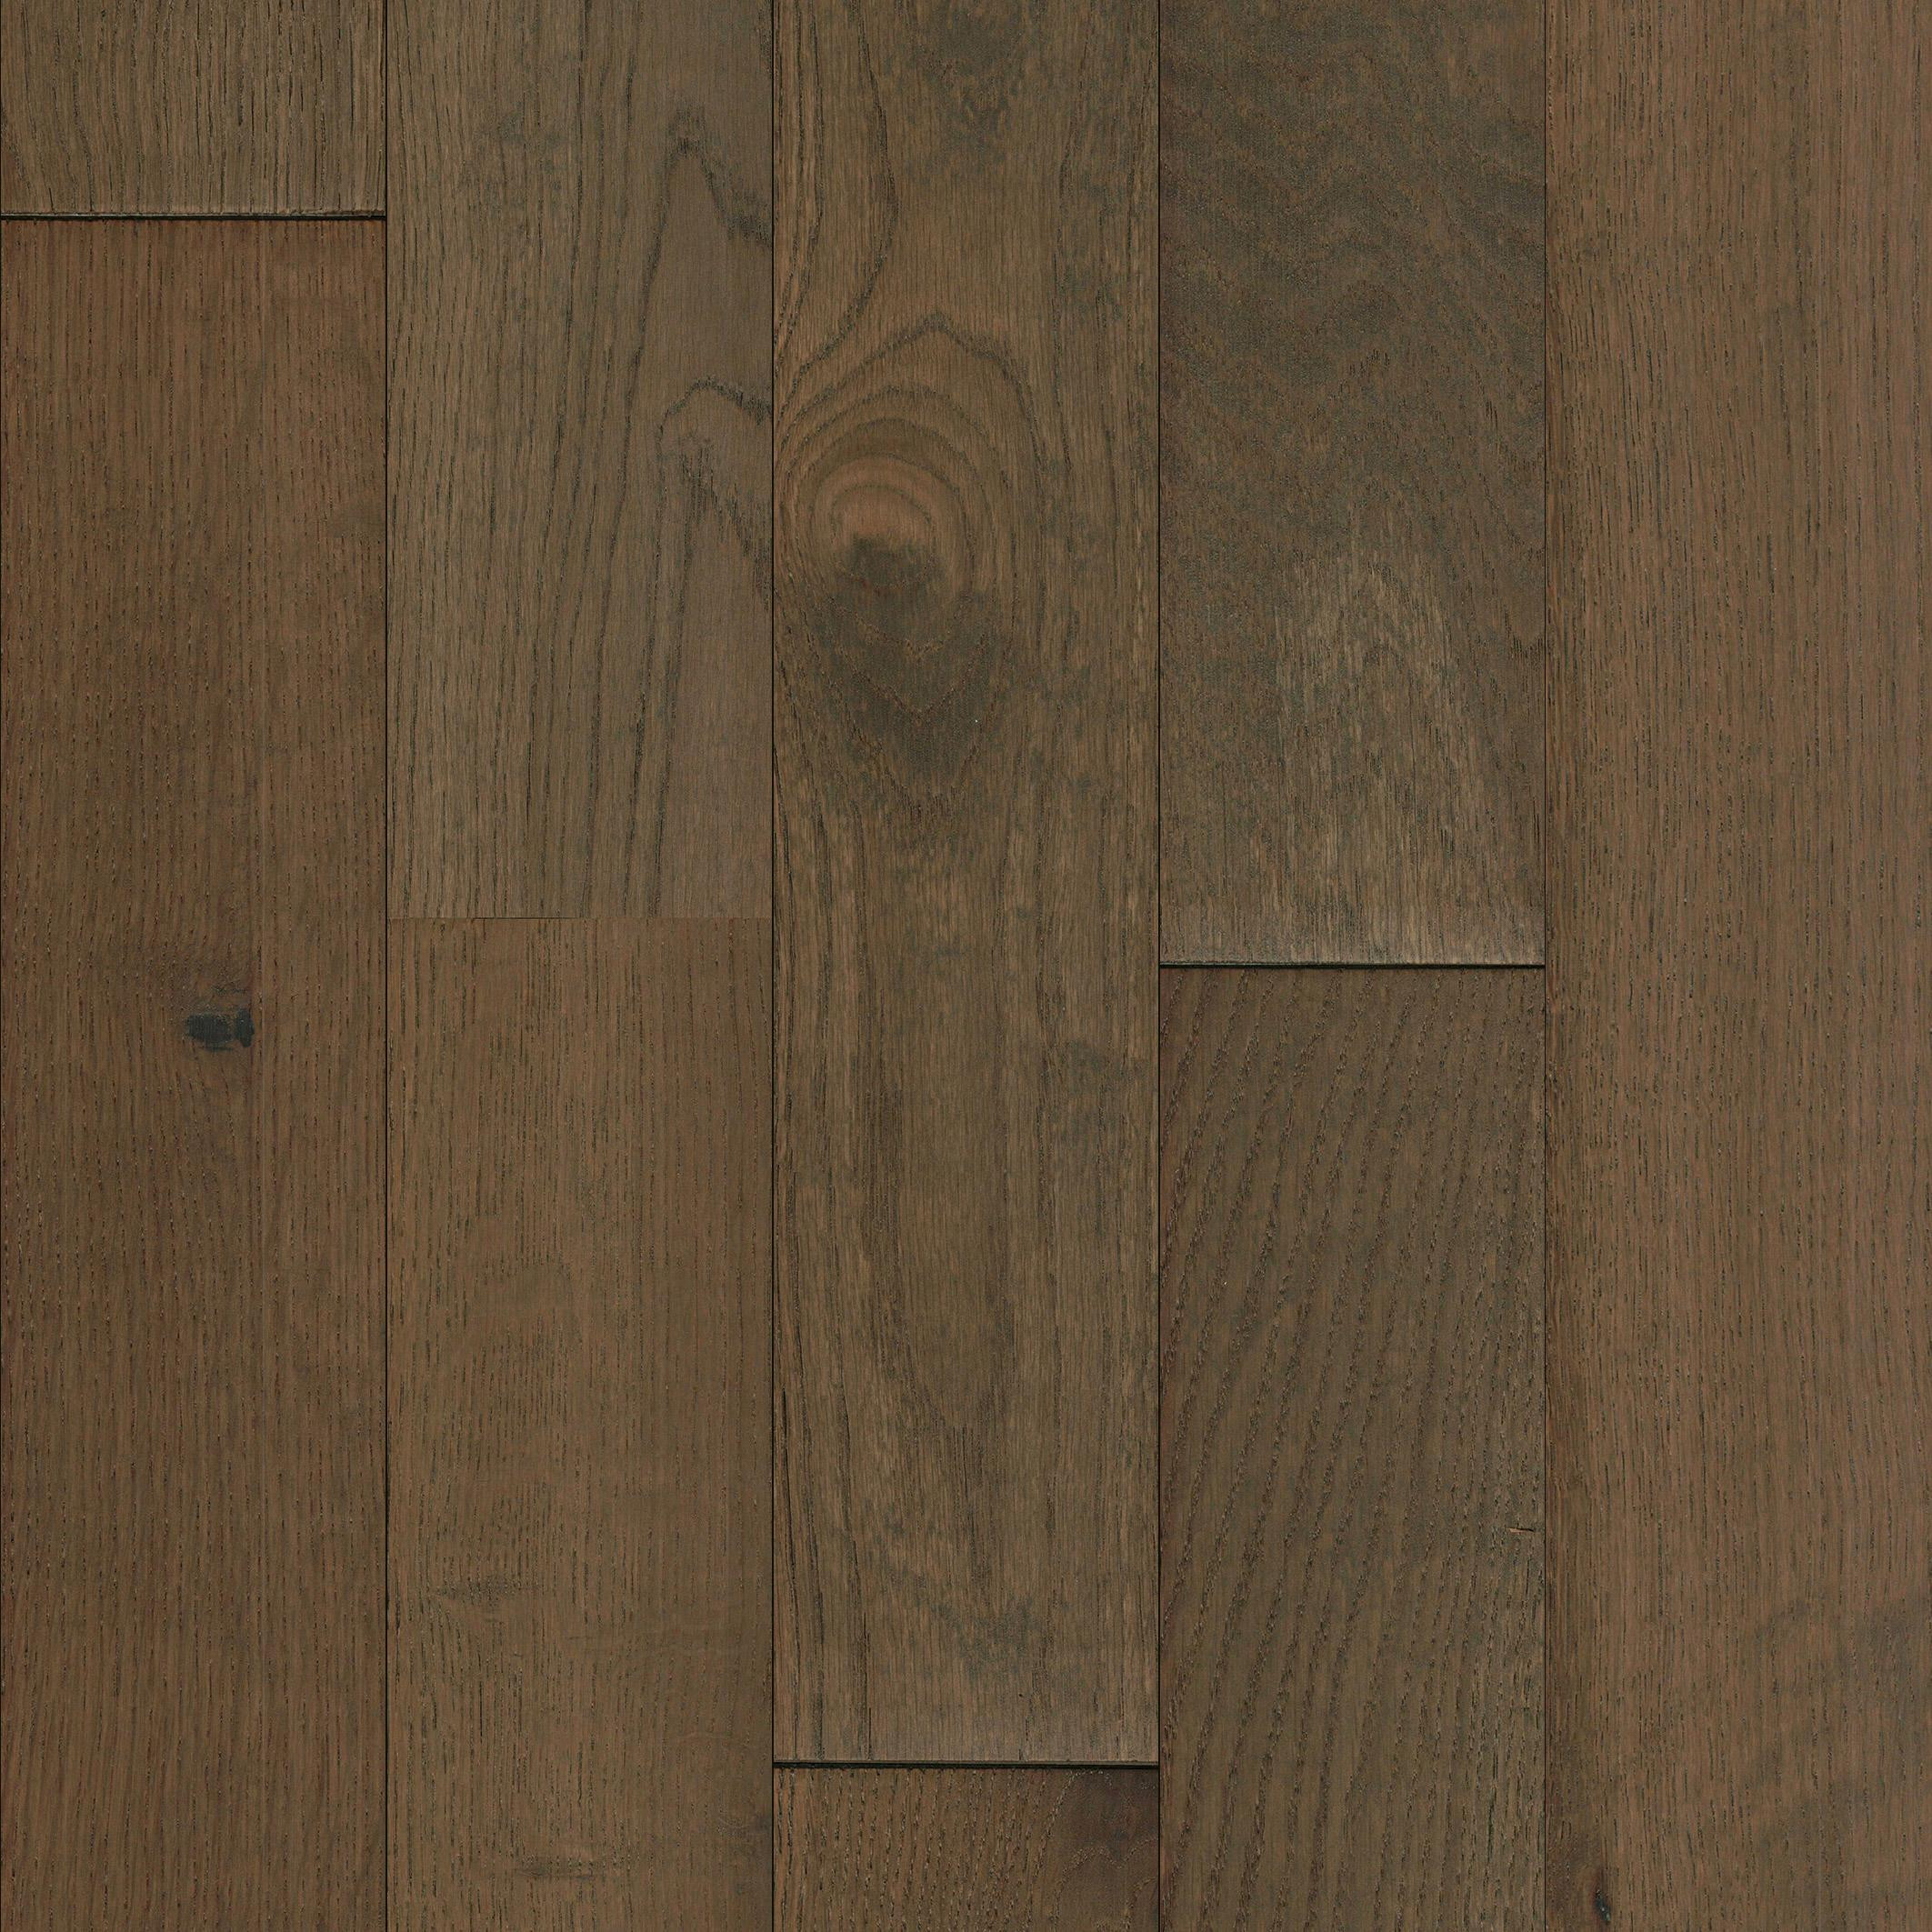 beveled edge hardwood flooring of timber hardwood gray4 1 4 wide solid hardwood flooring regarding more views